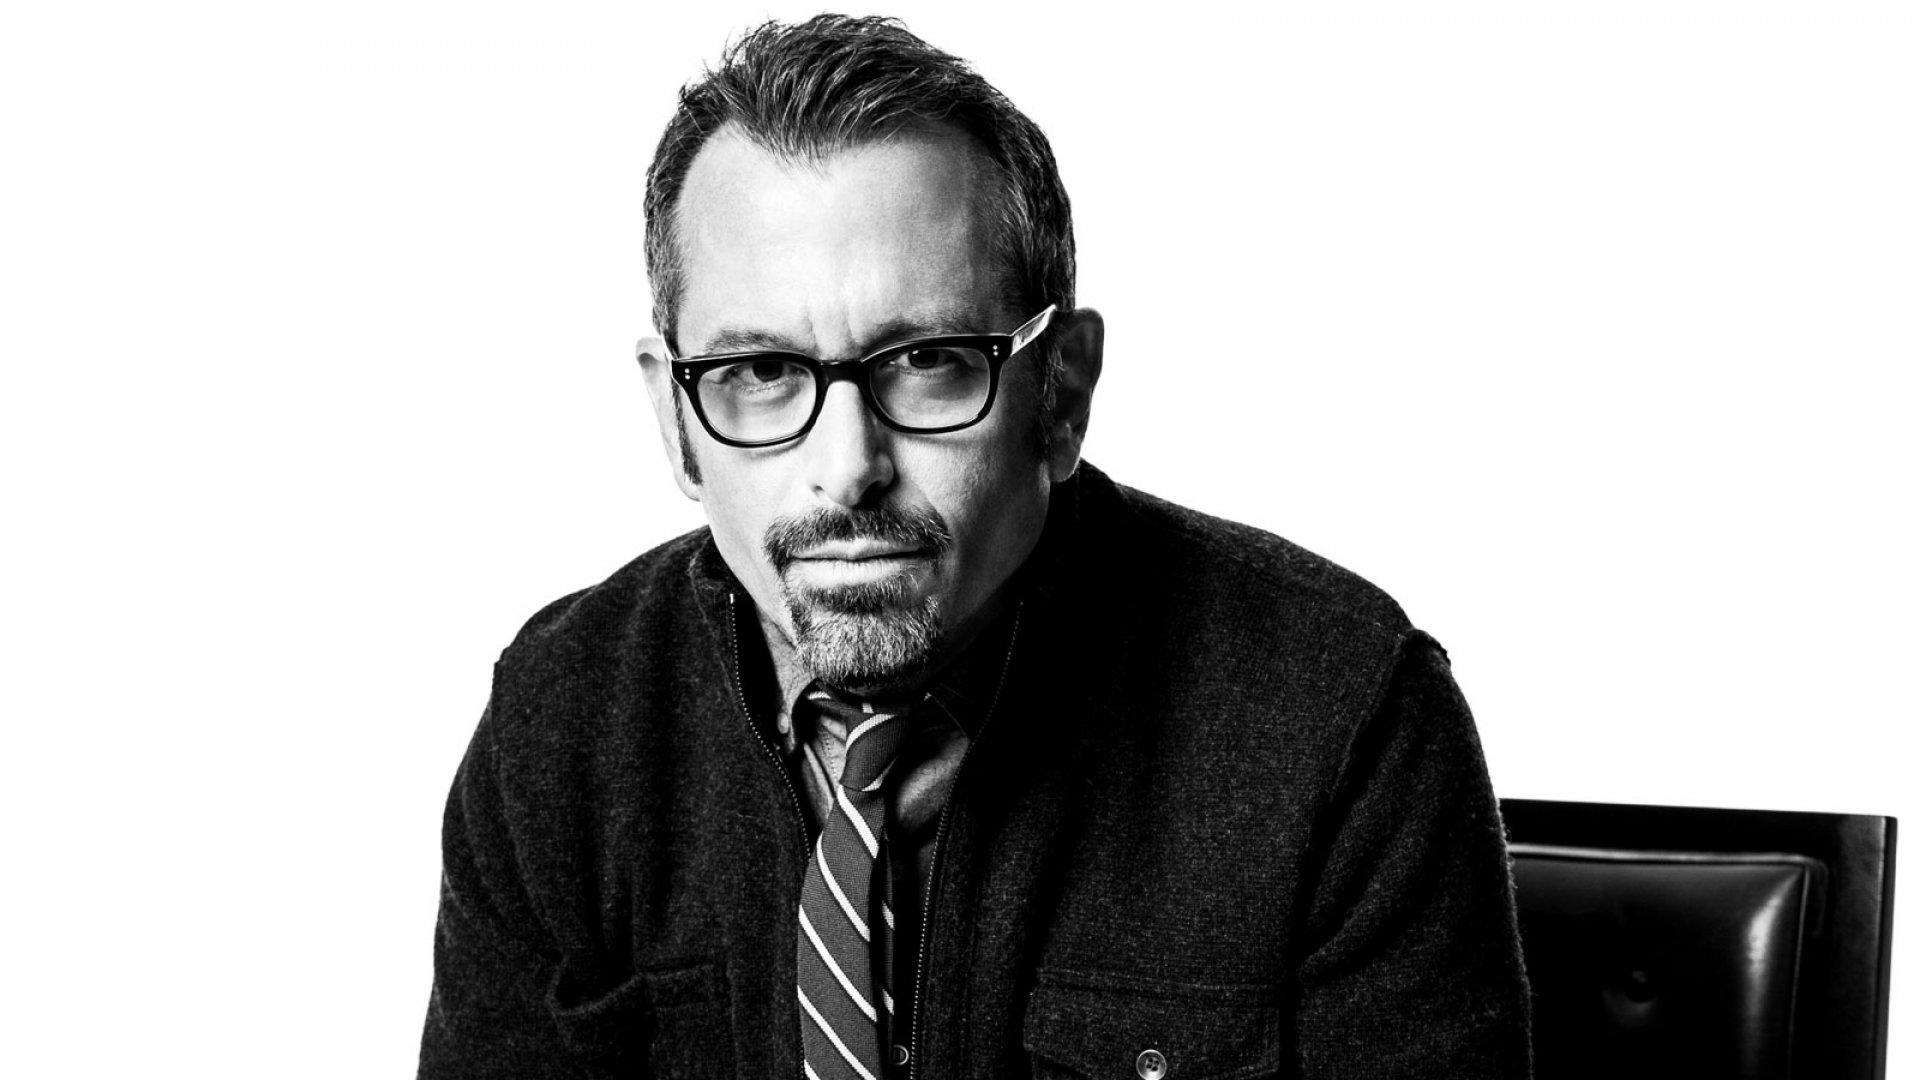 Director Andrew Jarecki speaks onstage during 'THE JINX The Life and Deaths of Robert Durst' panel as part of the 2015 HBO Winter Television Critics Association press tour. (Photo by Jeff Kravitz/FilmMagic)